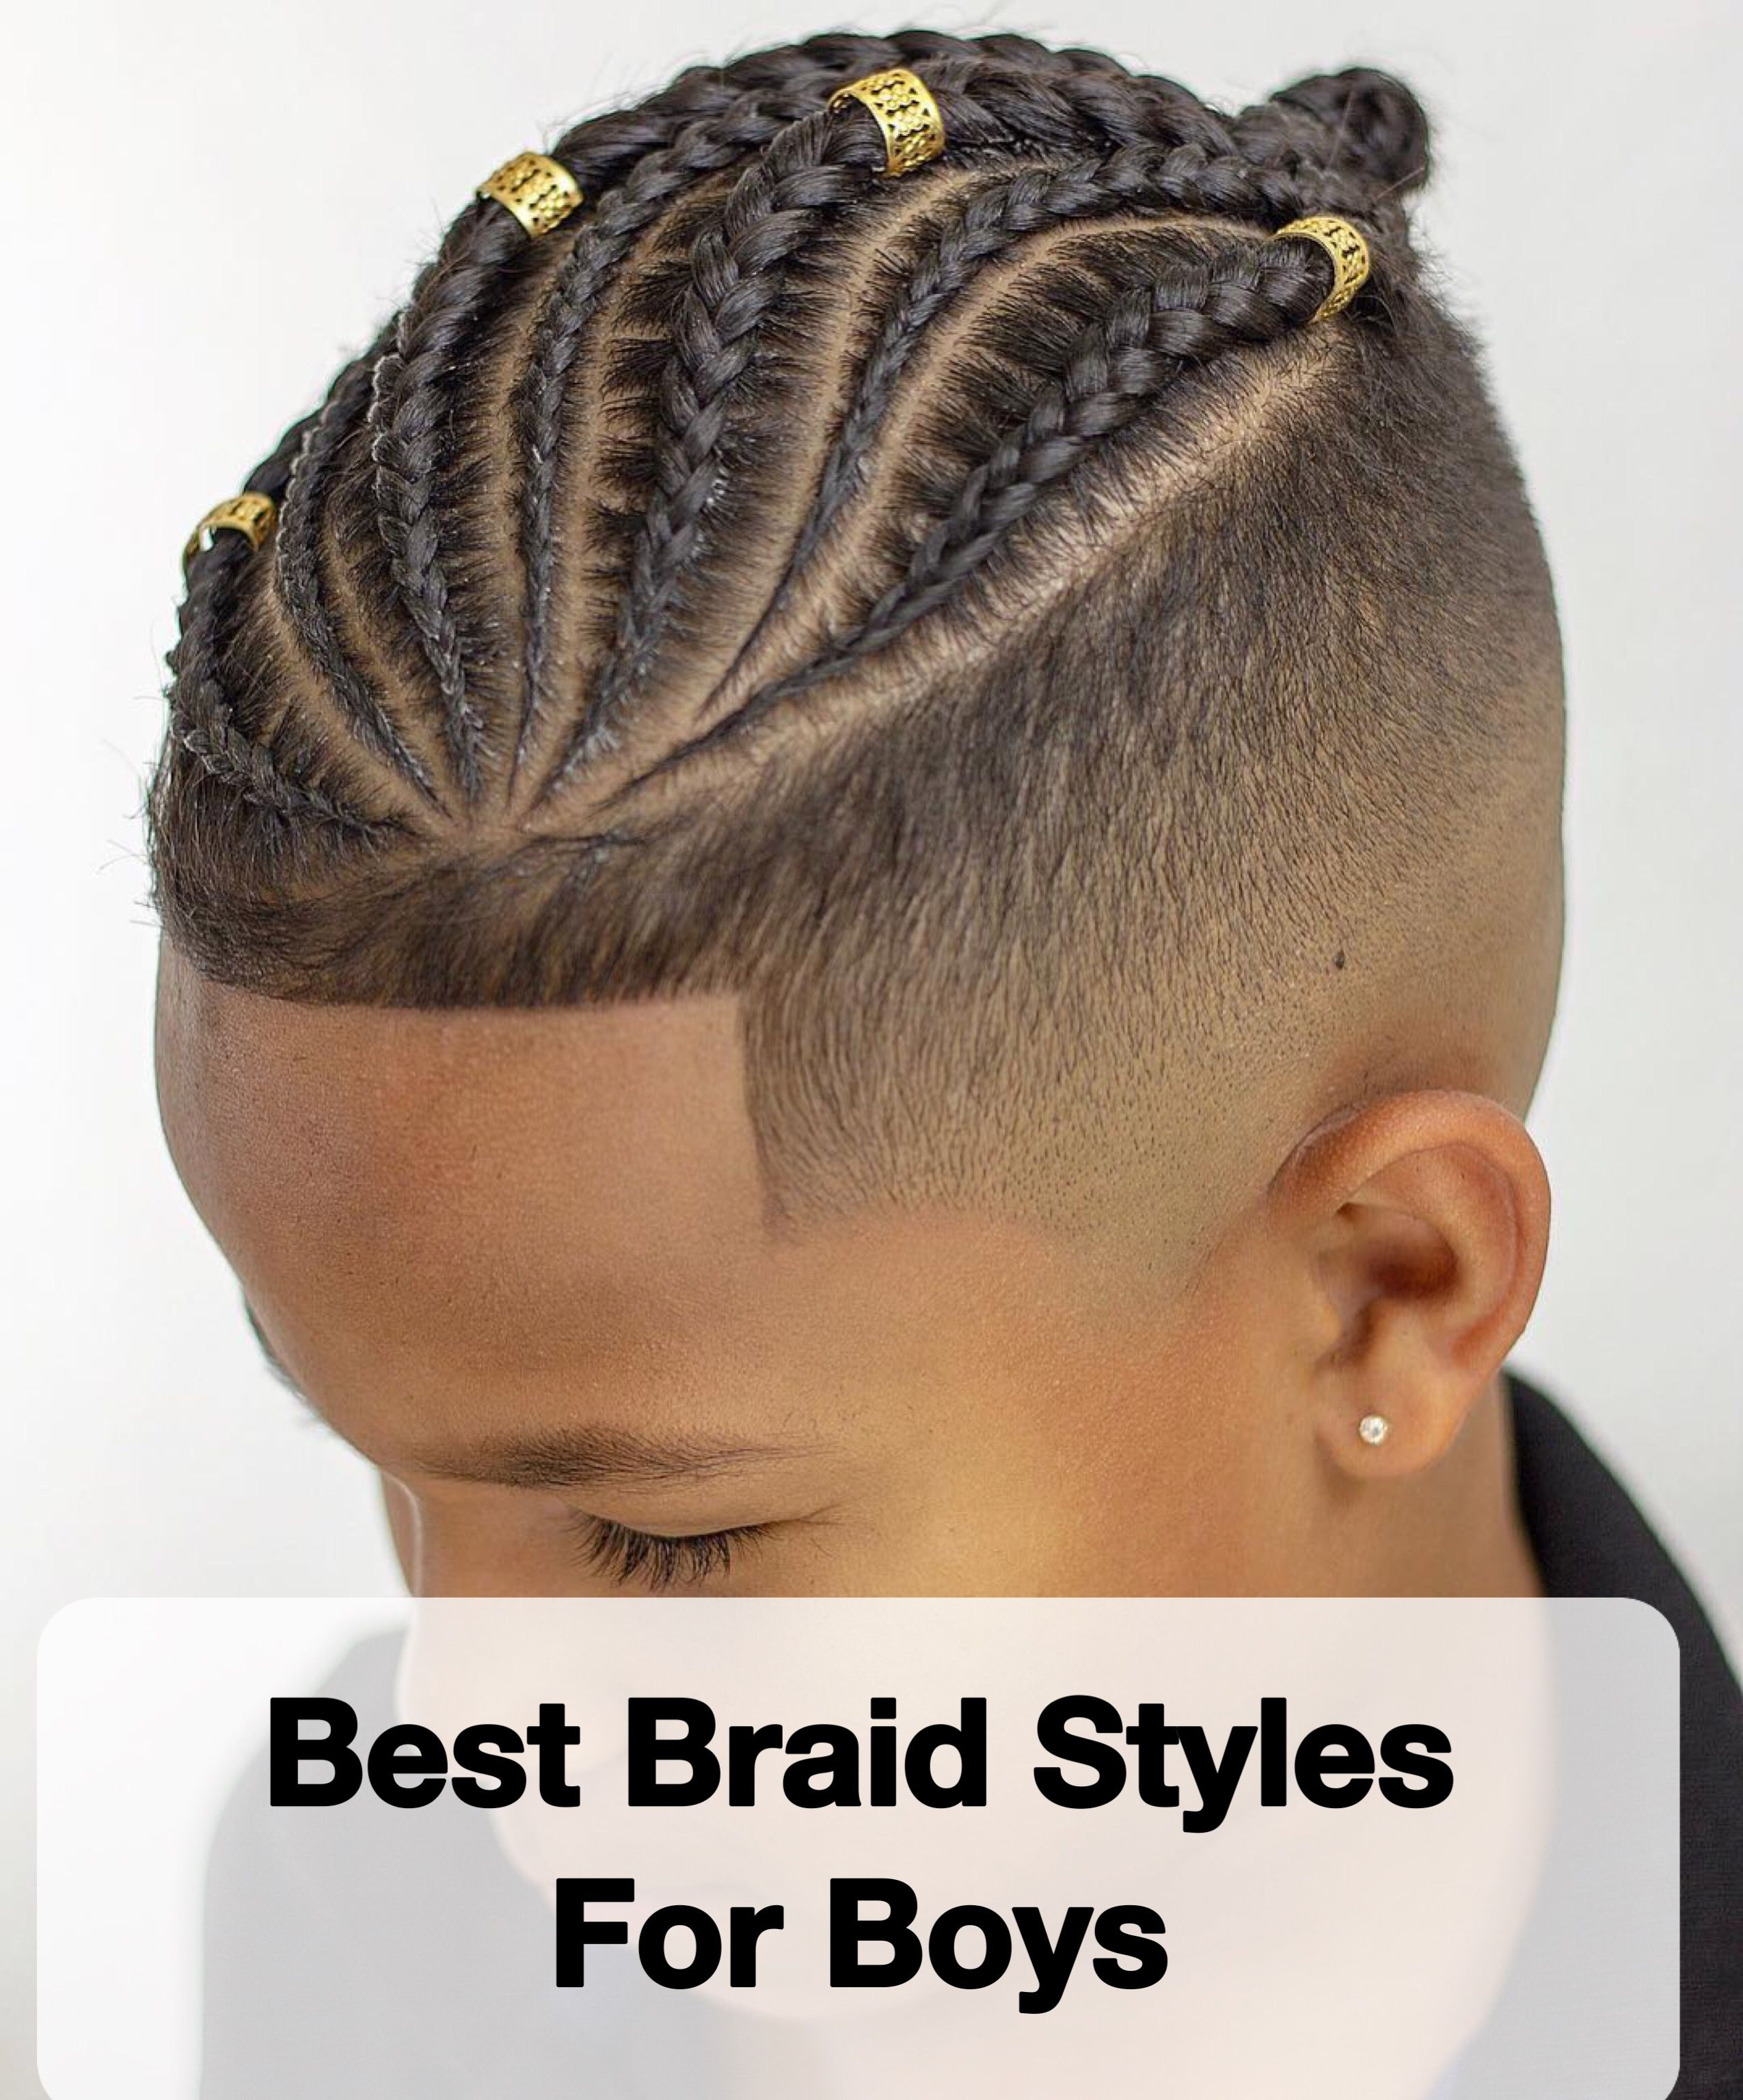 Braids For Kids: 15 Amazing Braid Styles For Boys | Braids ...